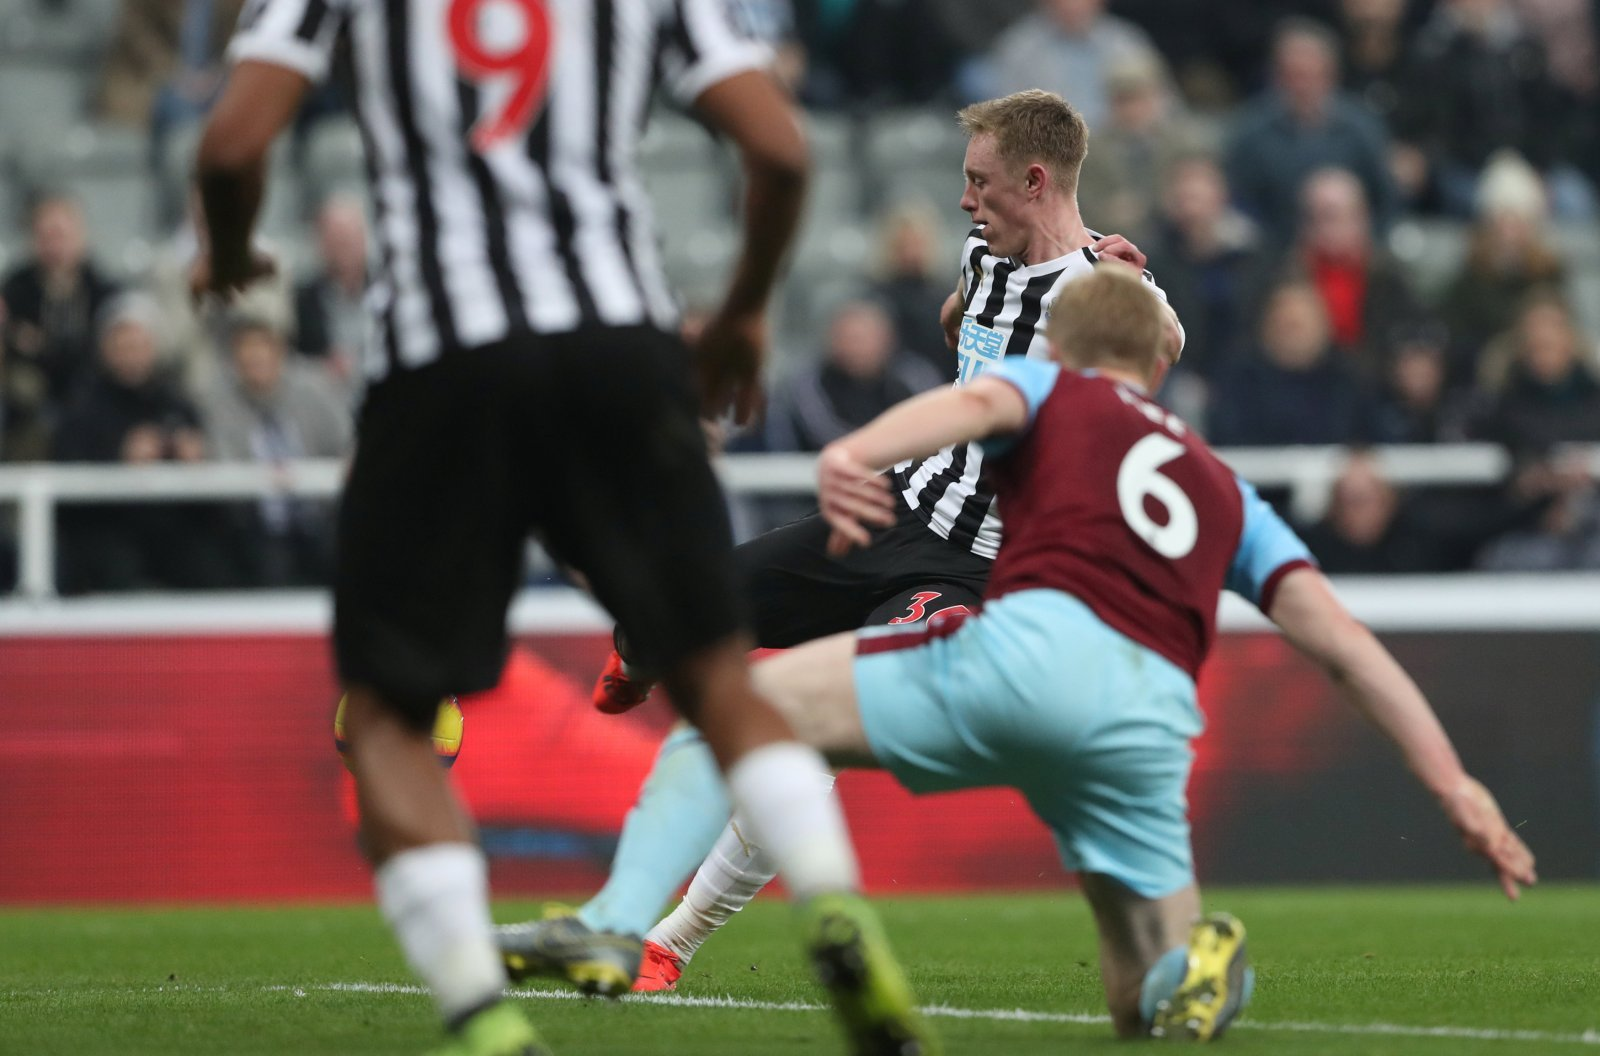 Newcastle United: Sean Longstaff open to staying but Andy Carroll saga can't be ignored